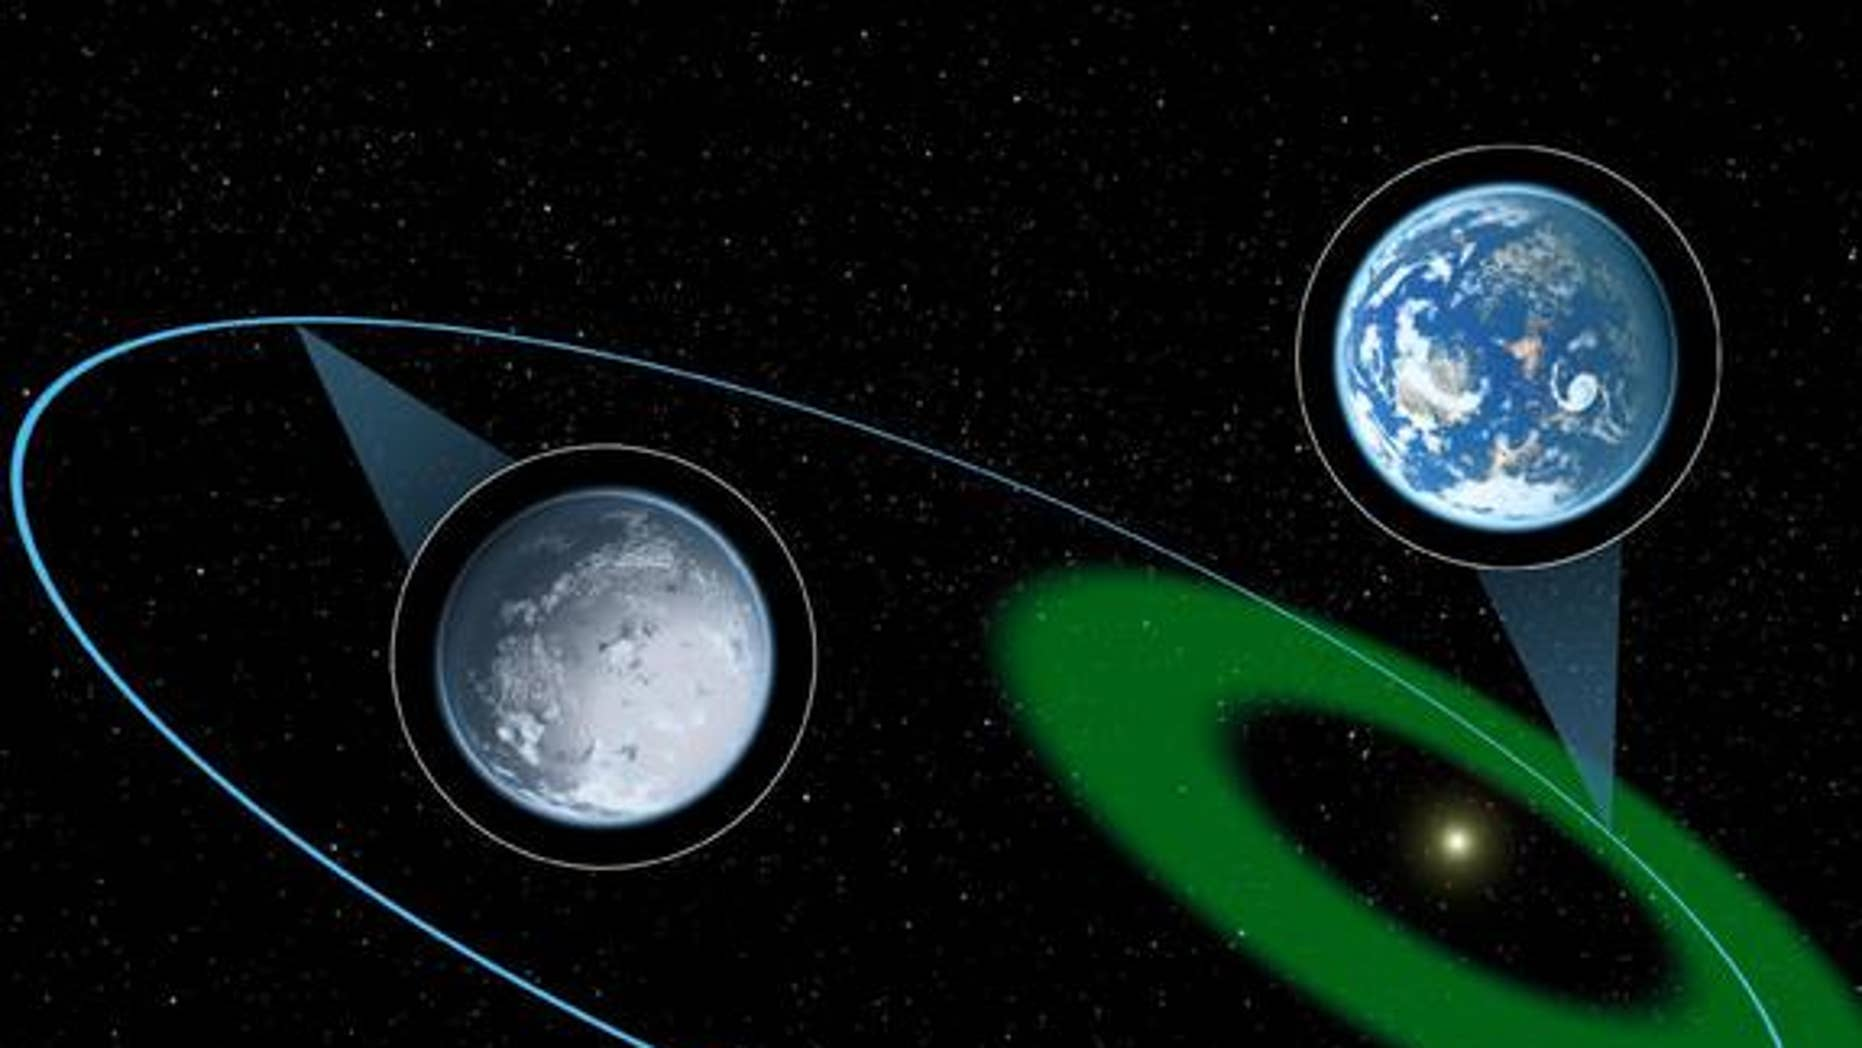 A hypothetical exoplanet is depicted here moving through its star's habitable zone and then further out into a long, cold winter.